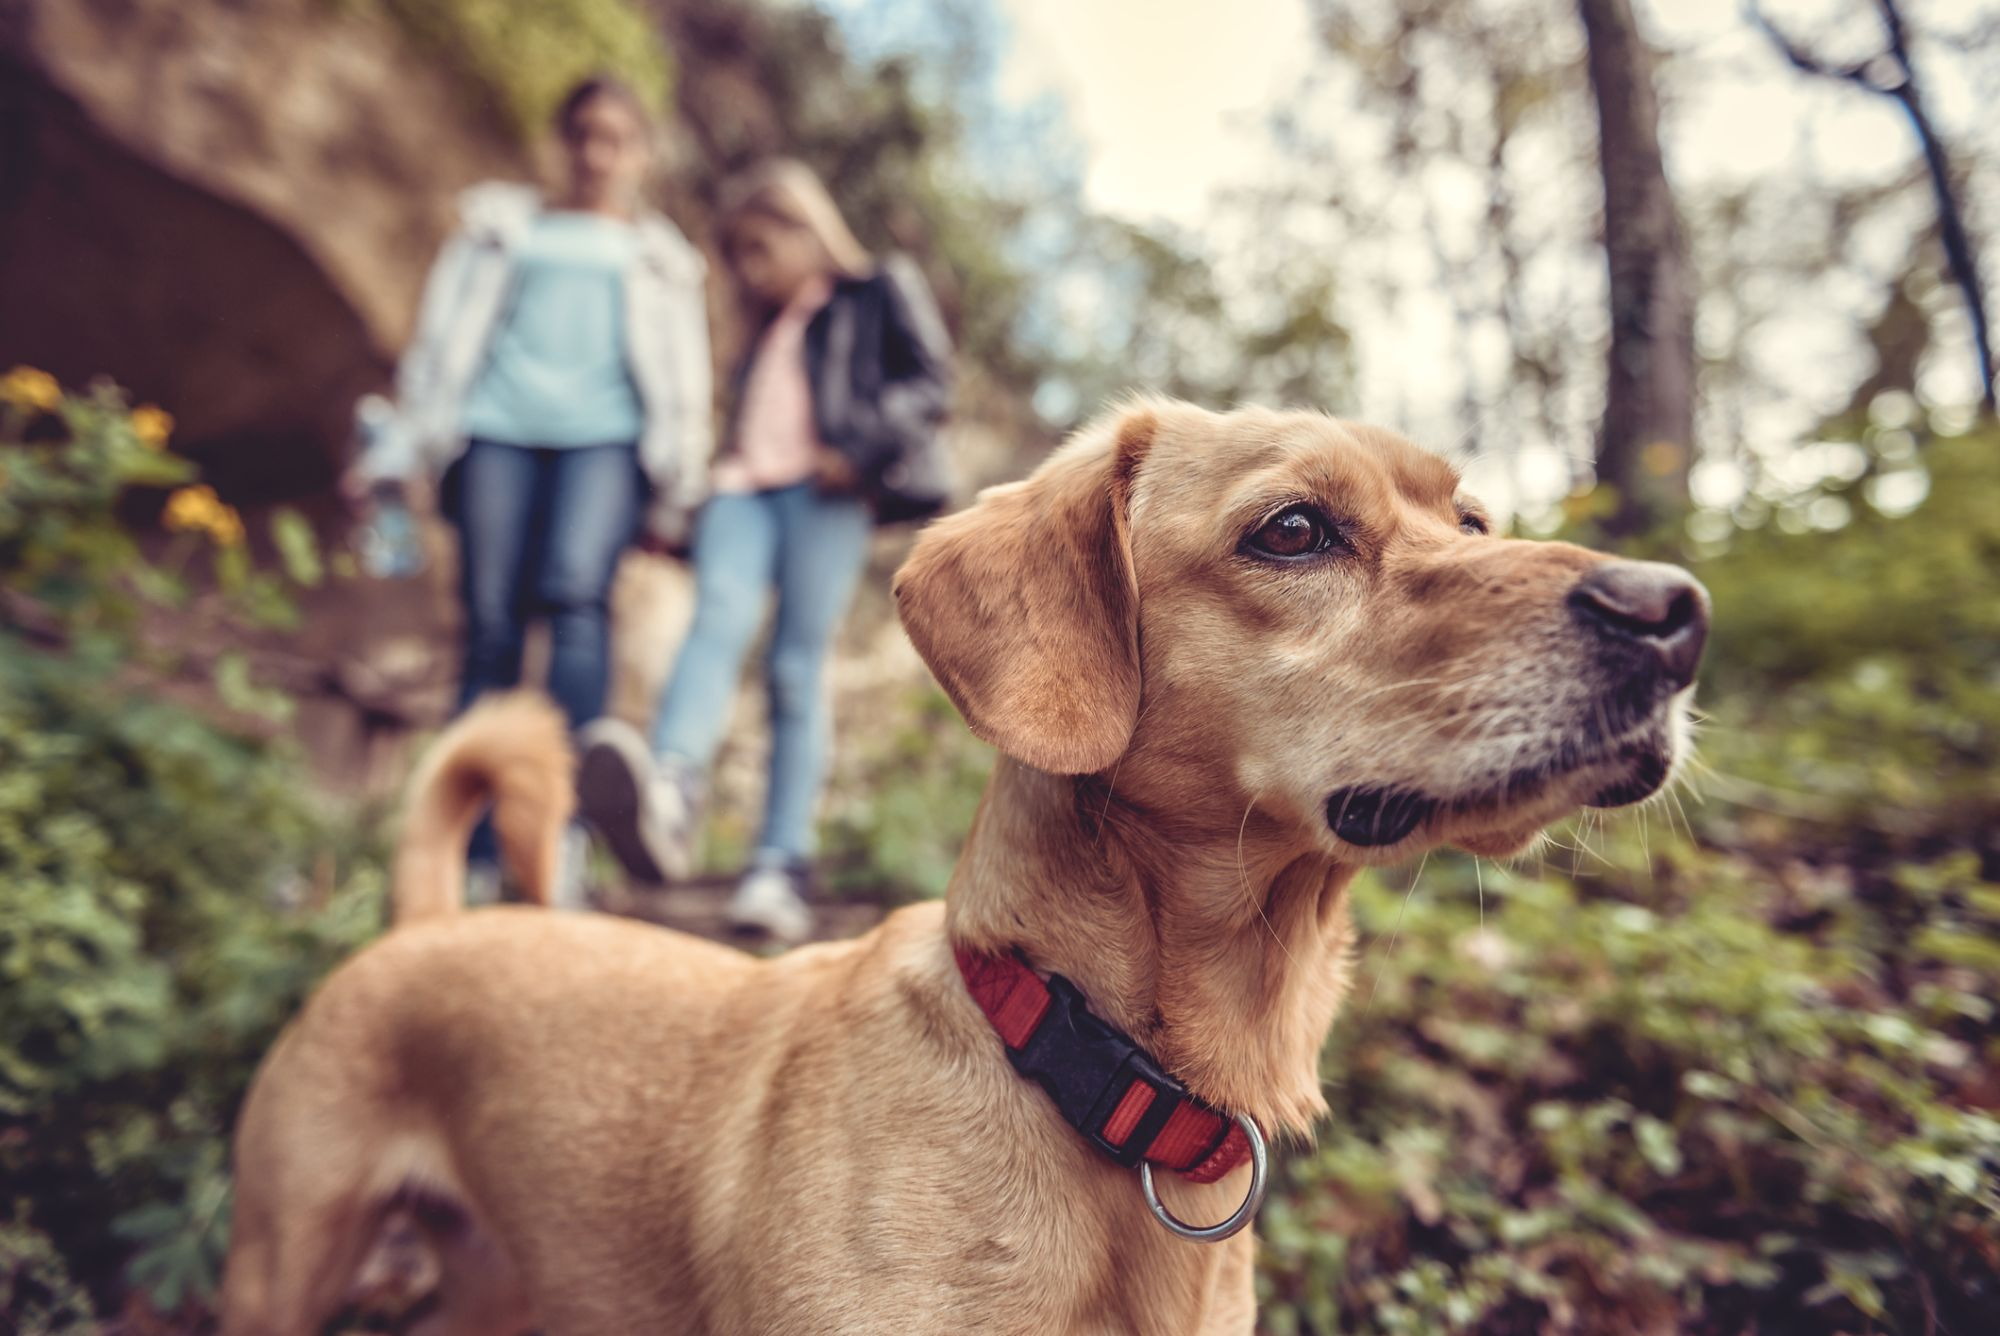 Cute dog on a hiking trail